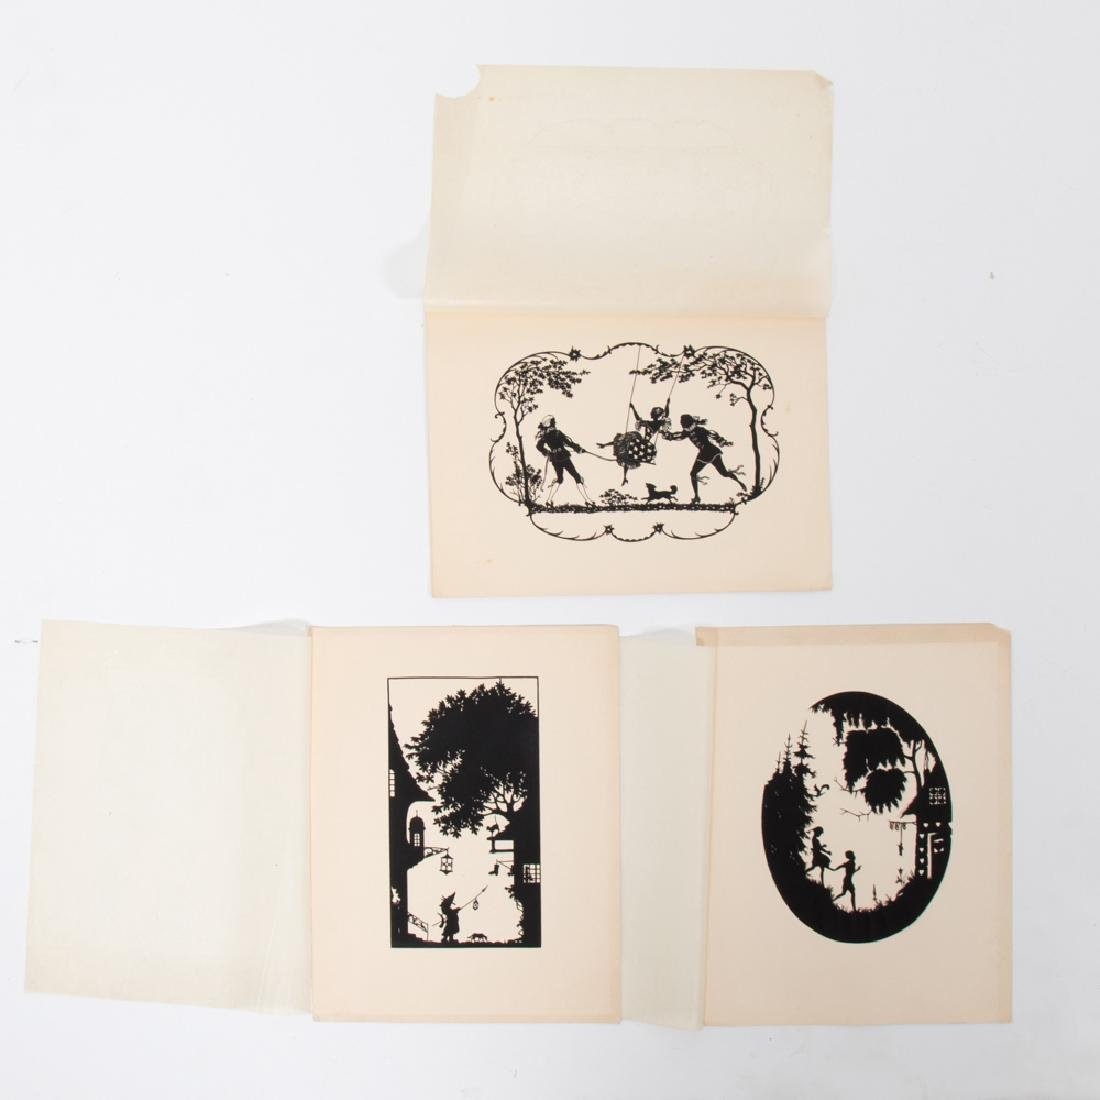 A Collection of Three Cut Paper Silhouettes Depicting